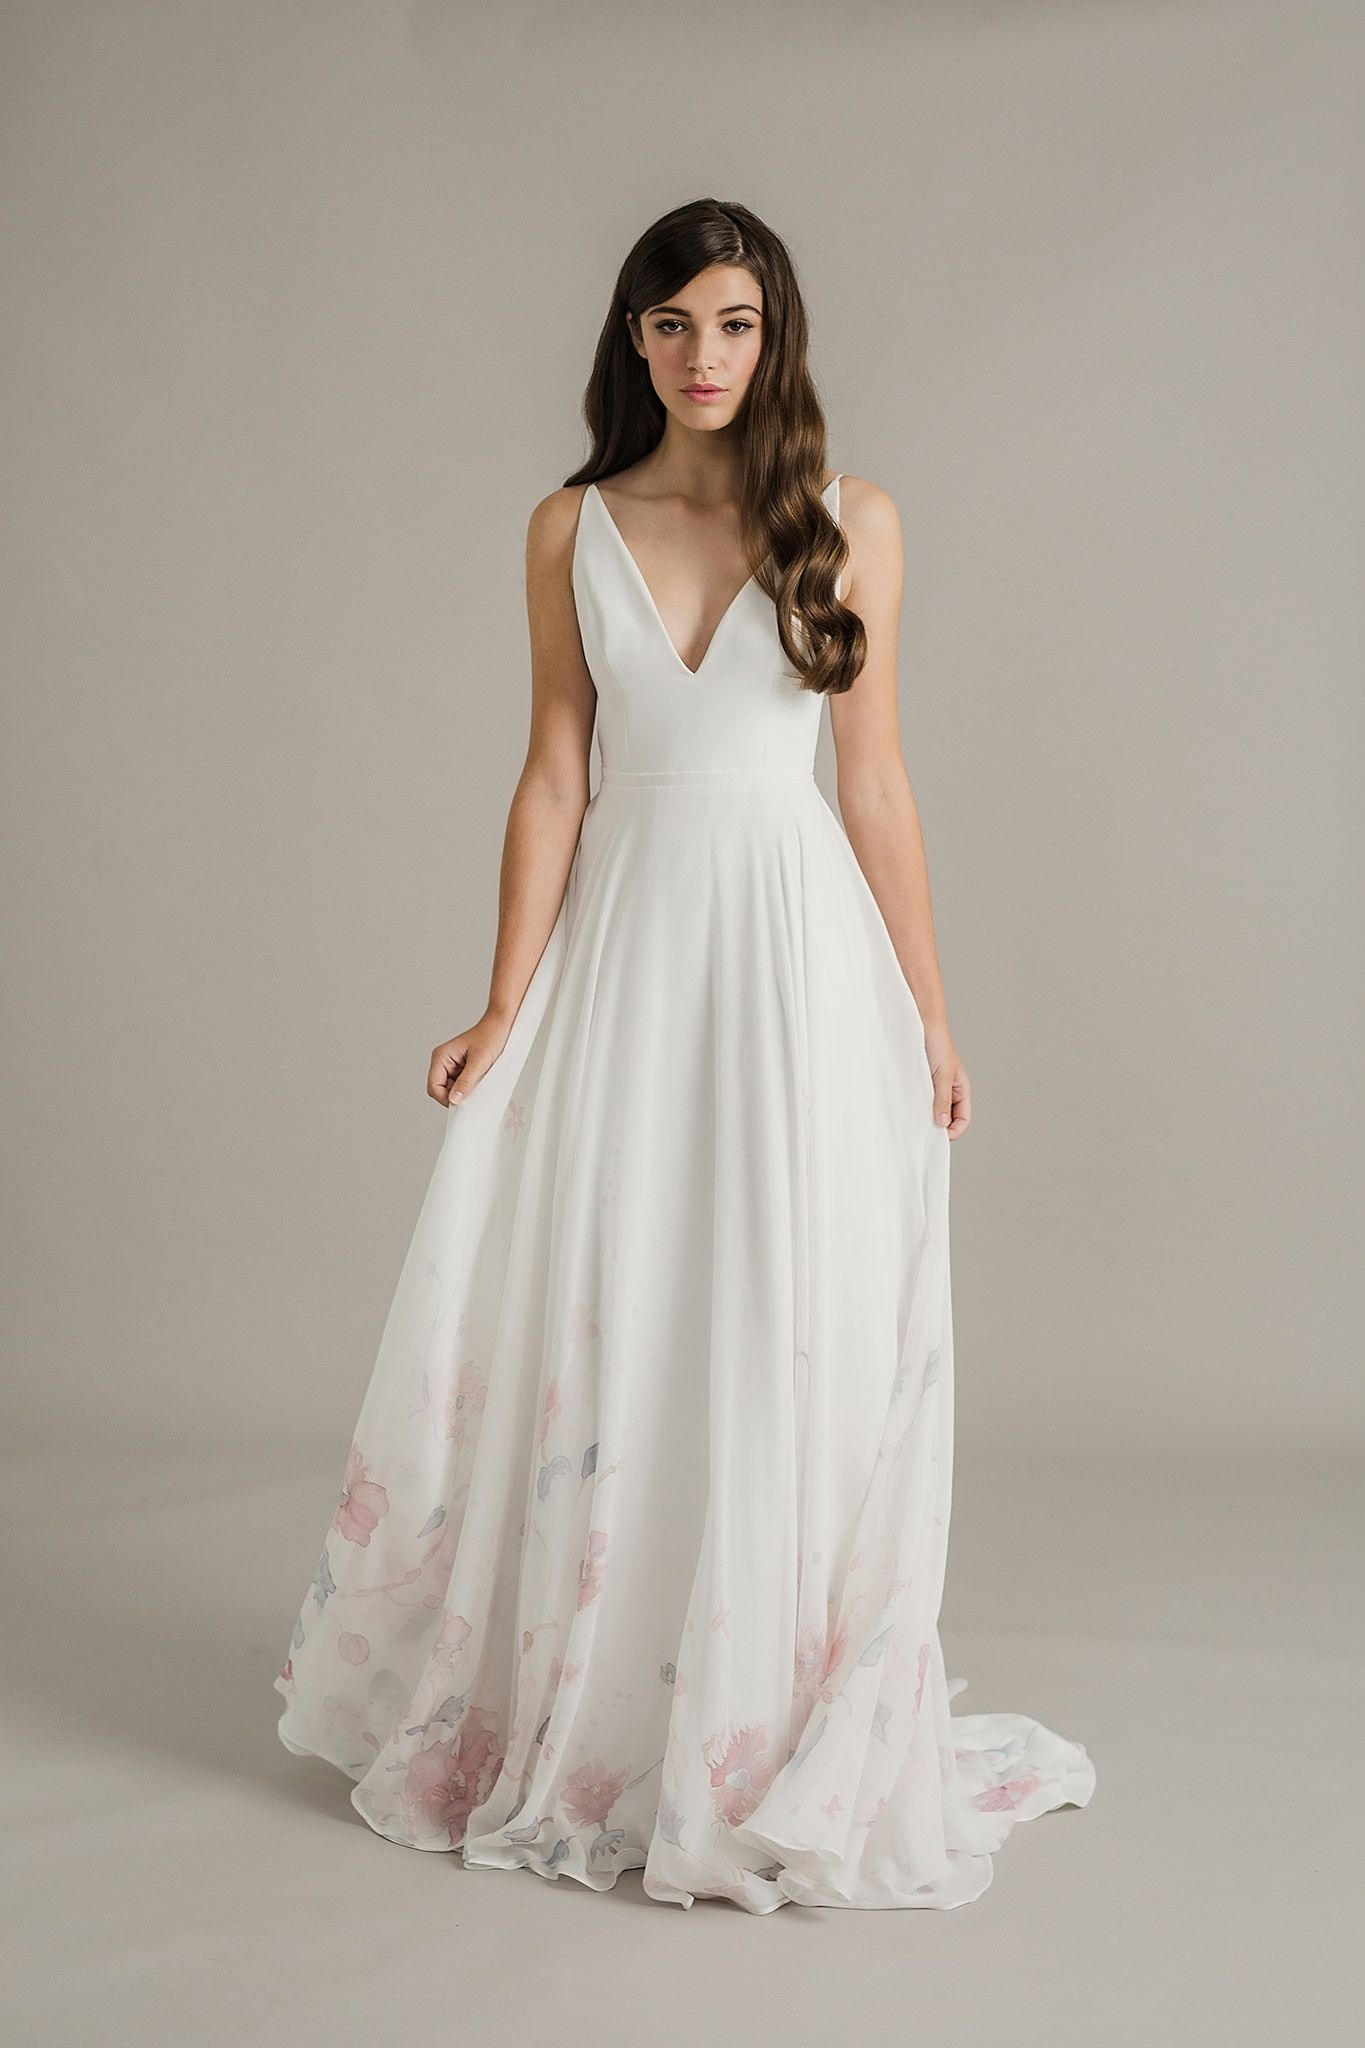 Floral print wedding dresses  Sally Eagle Wedding Dress Collection  Dusk  The oujays